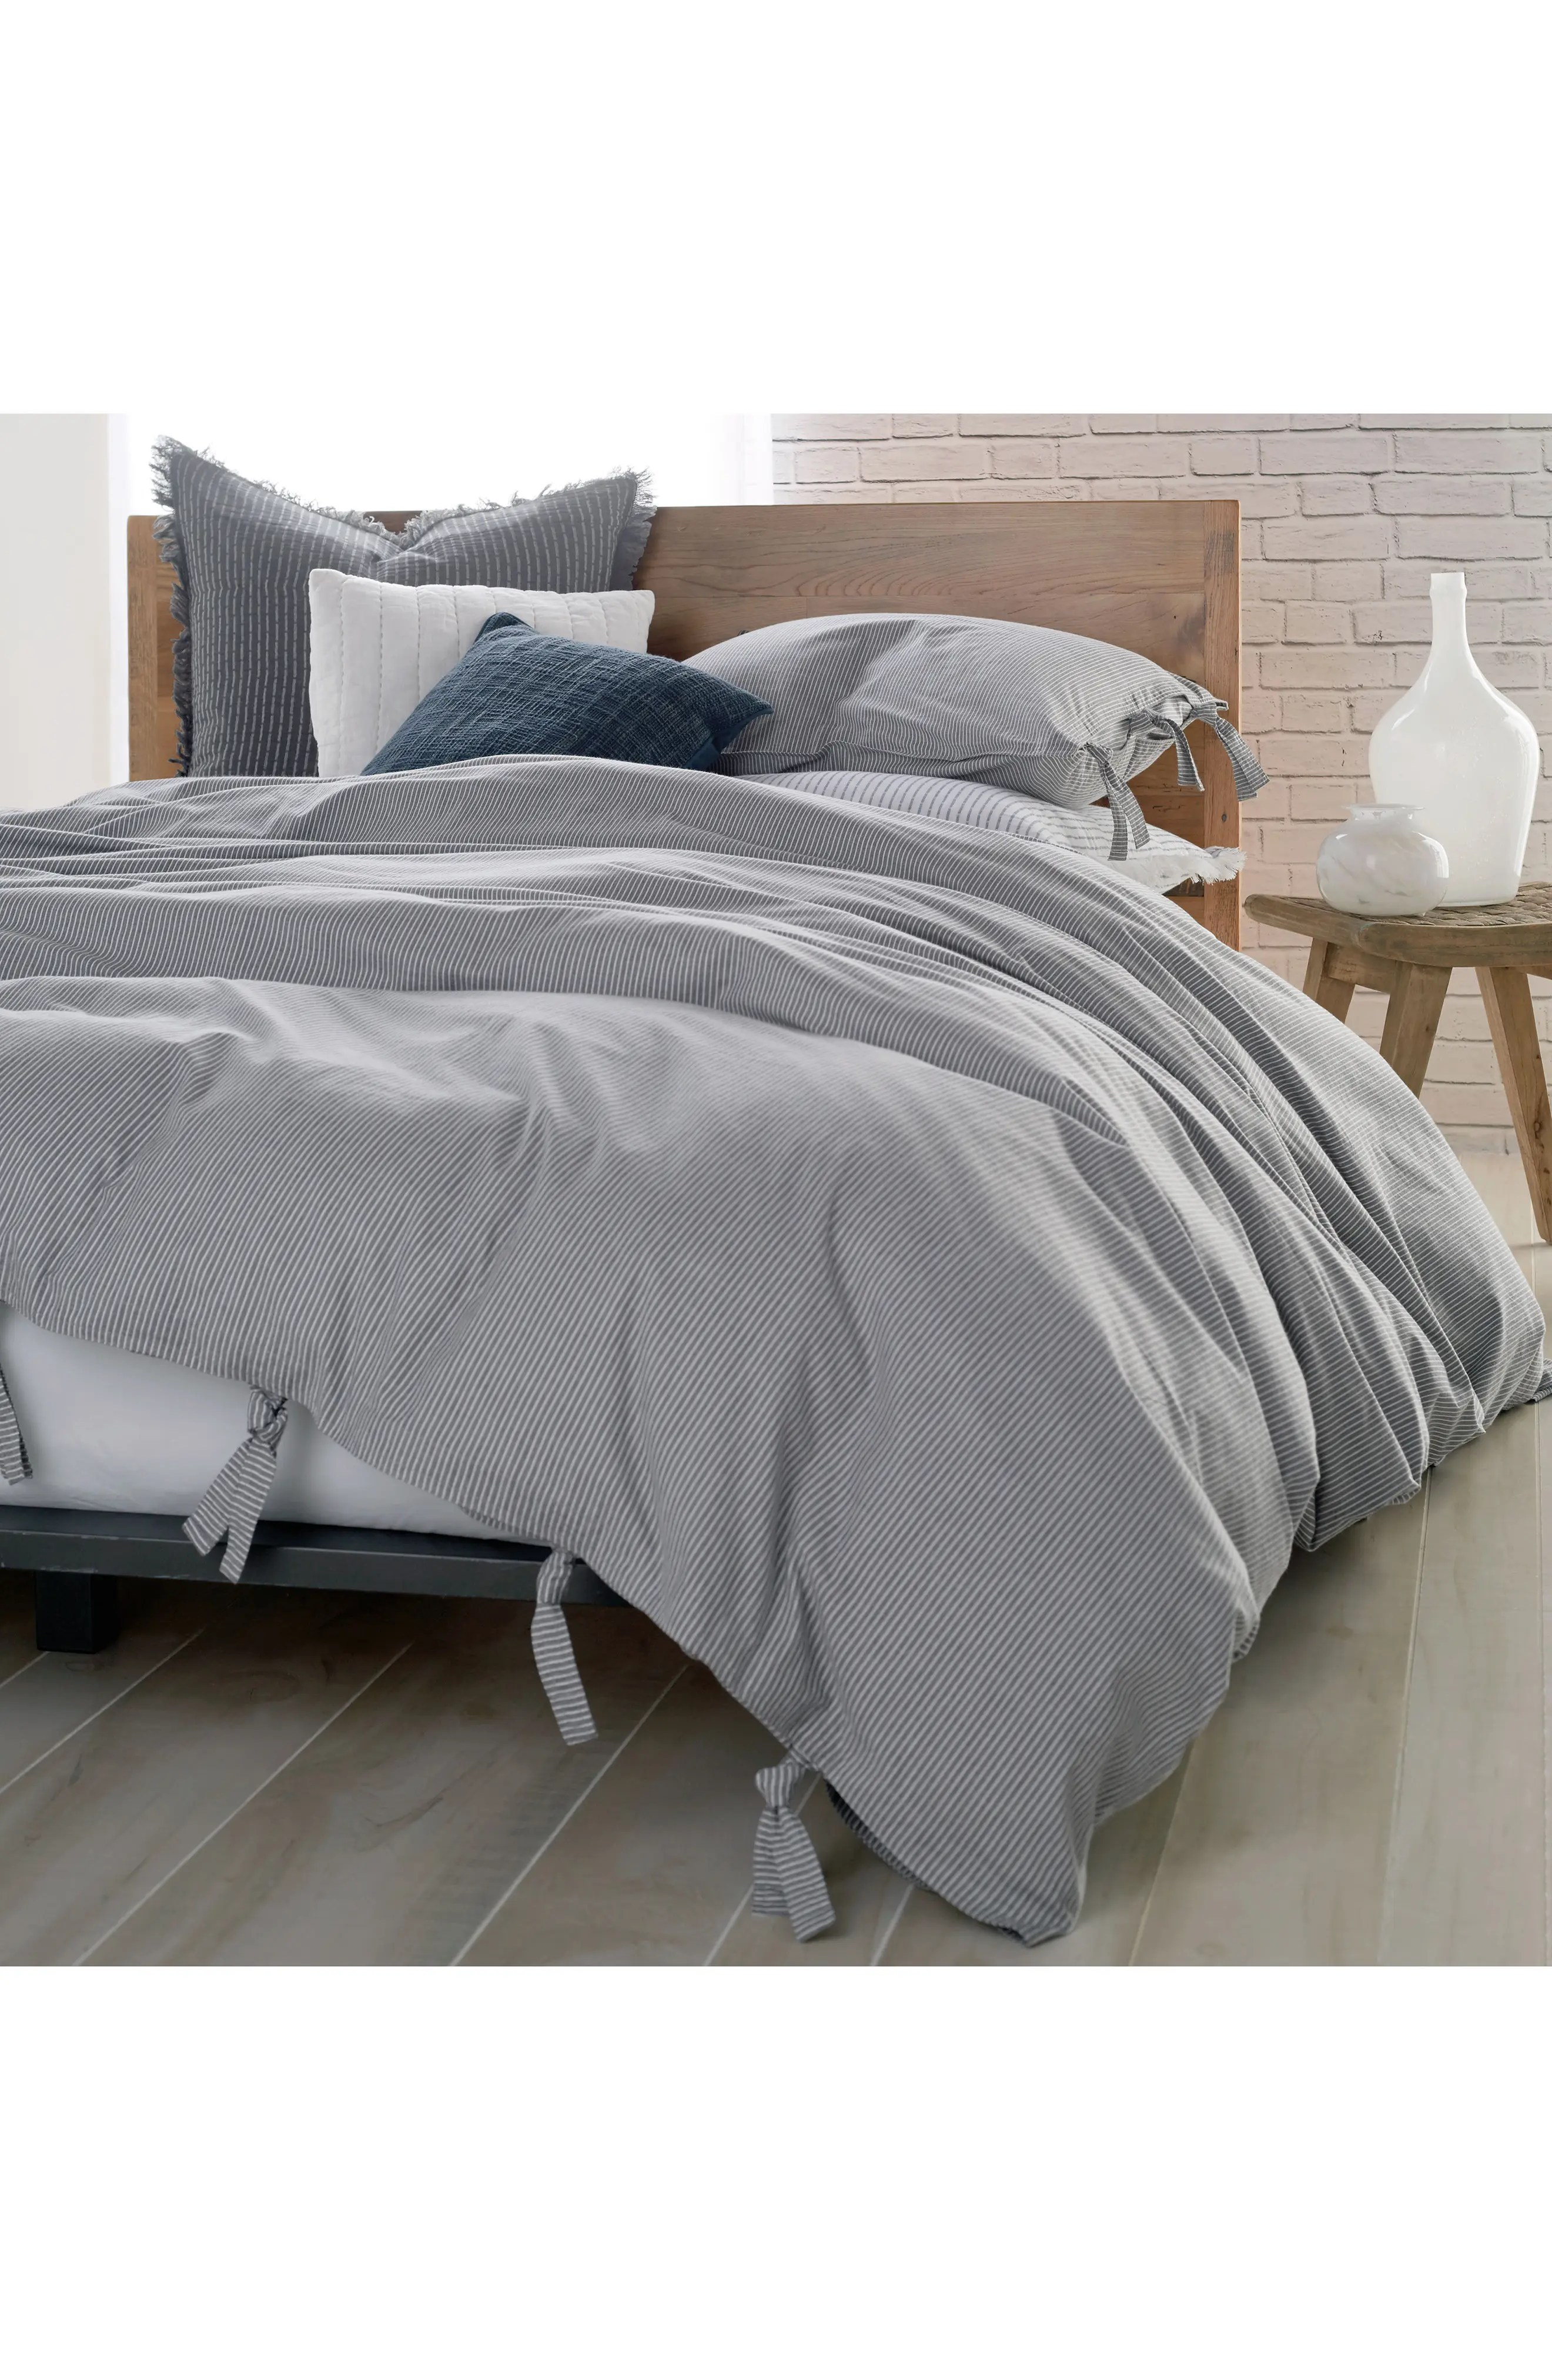 Duvet And Cover Pure Stripe 144 Thread Count Duvet Cover